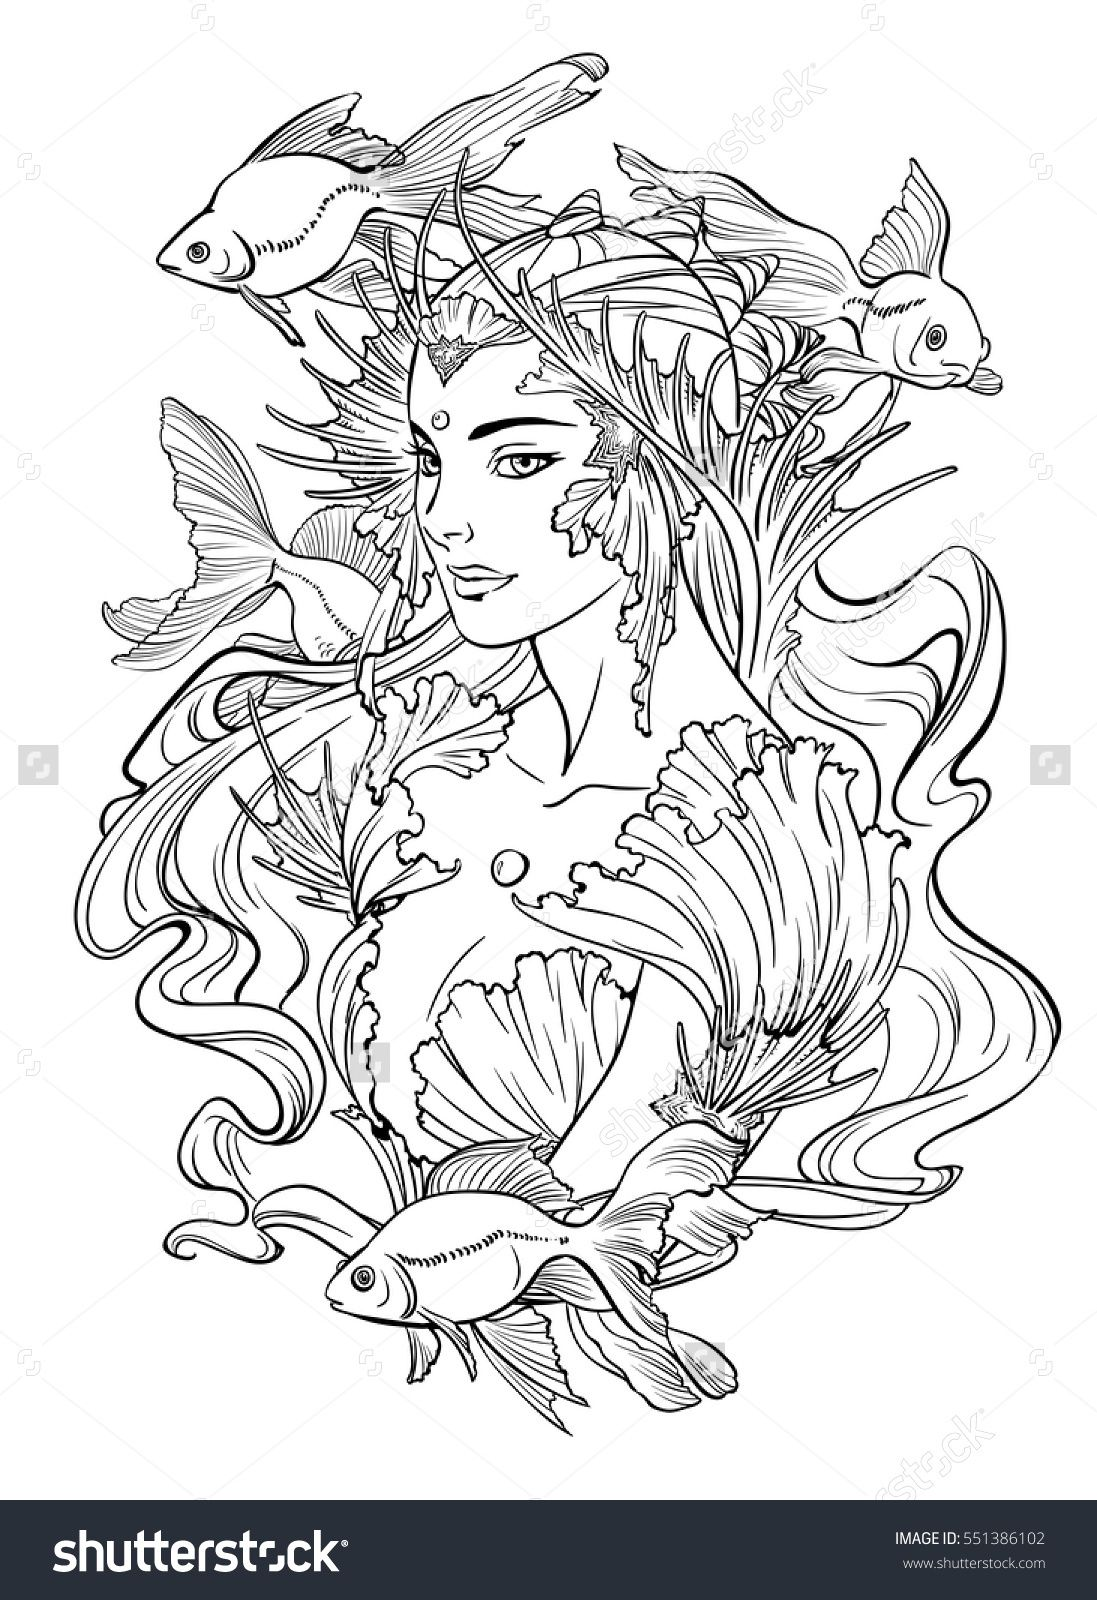 Illustration Of Mermaid Princess With Curled Hair